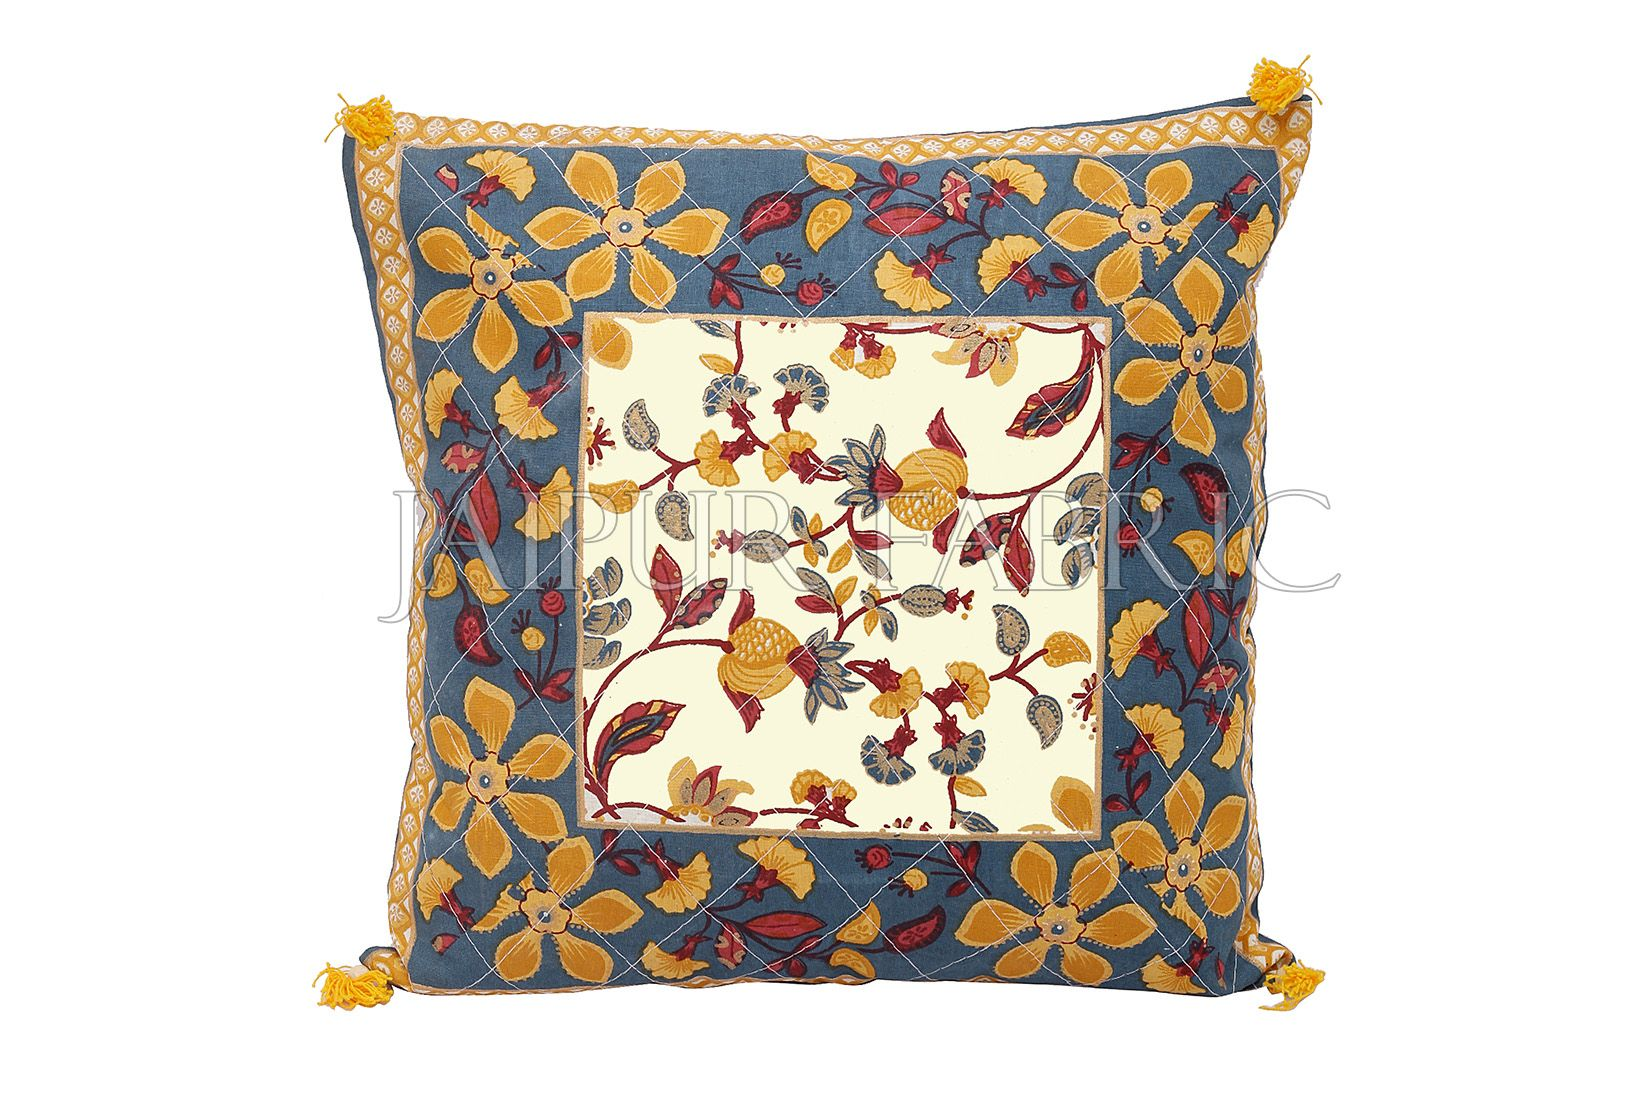 Gray Base Floral Print Cotton Cushion Cover